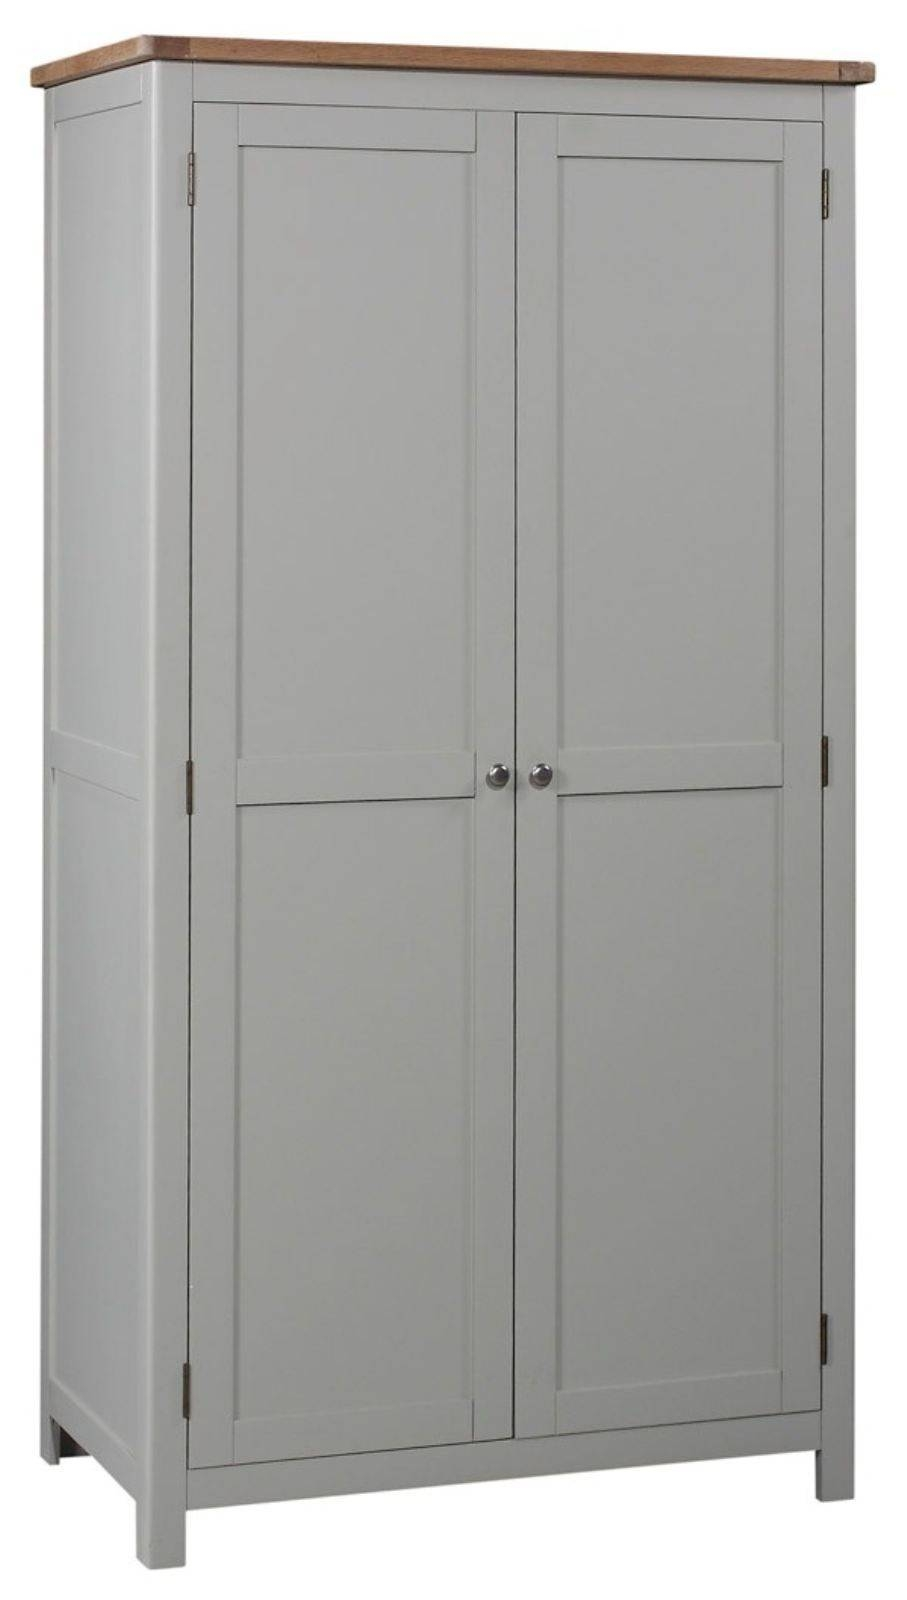 Grey Painted Double Wardrobe with regard to Grey Painted Wardrobes (Image 5 of 15)